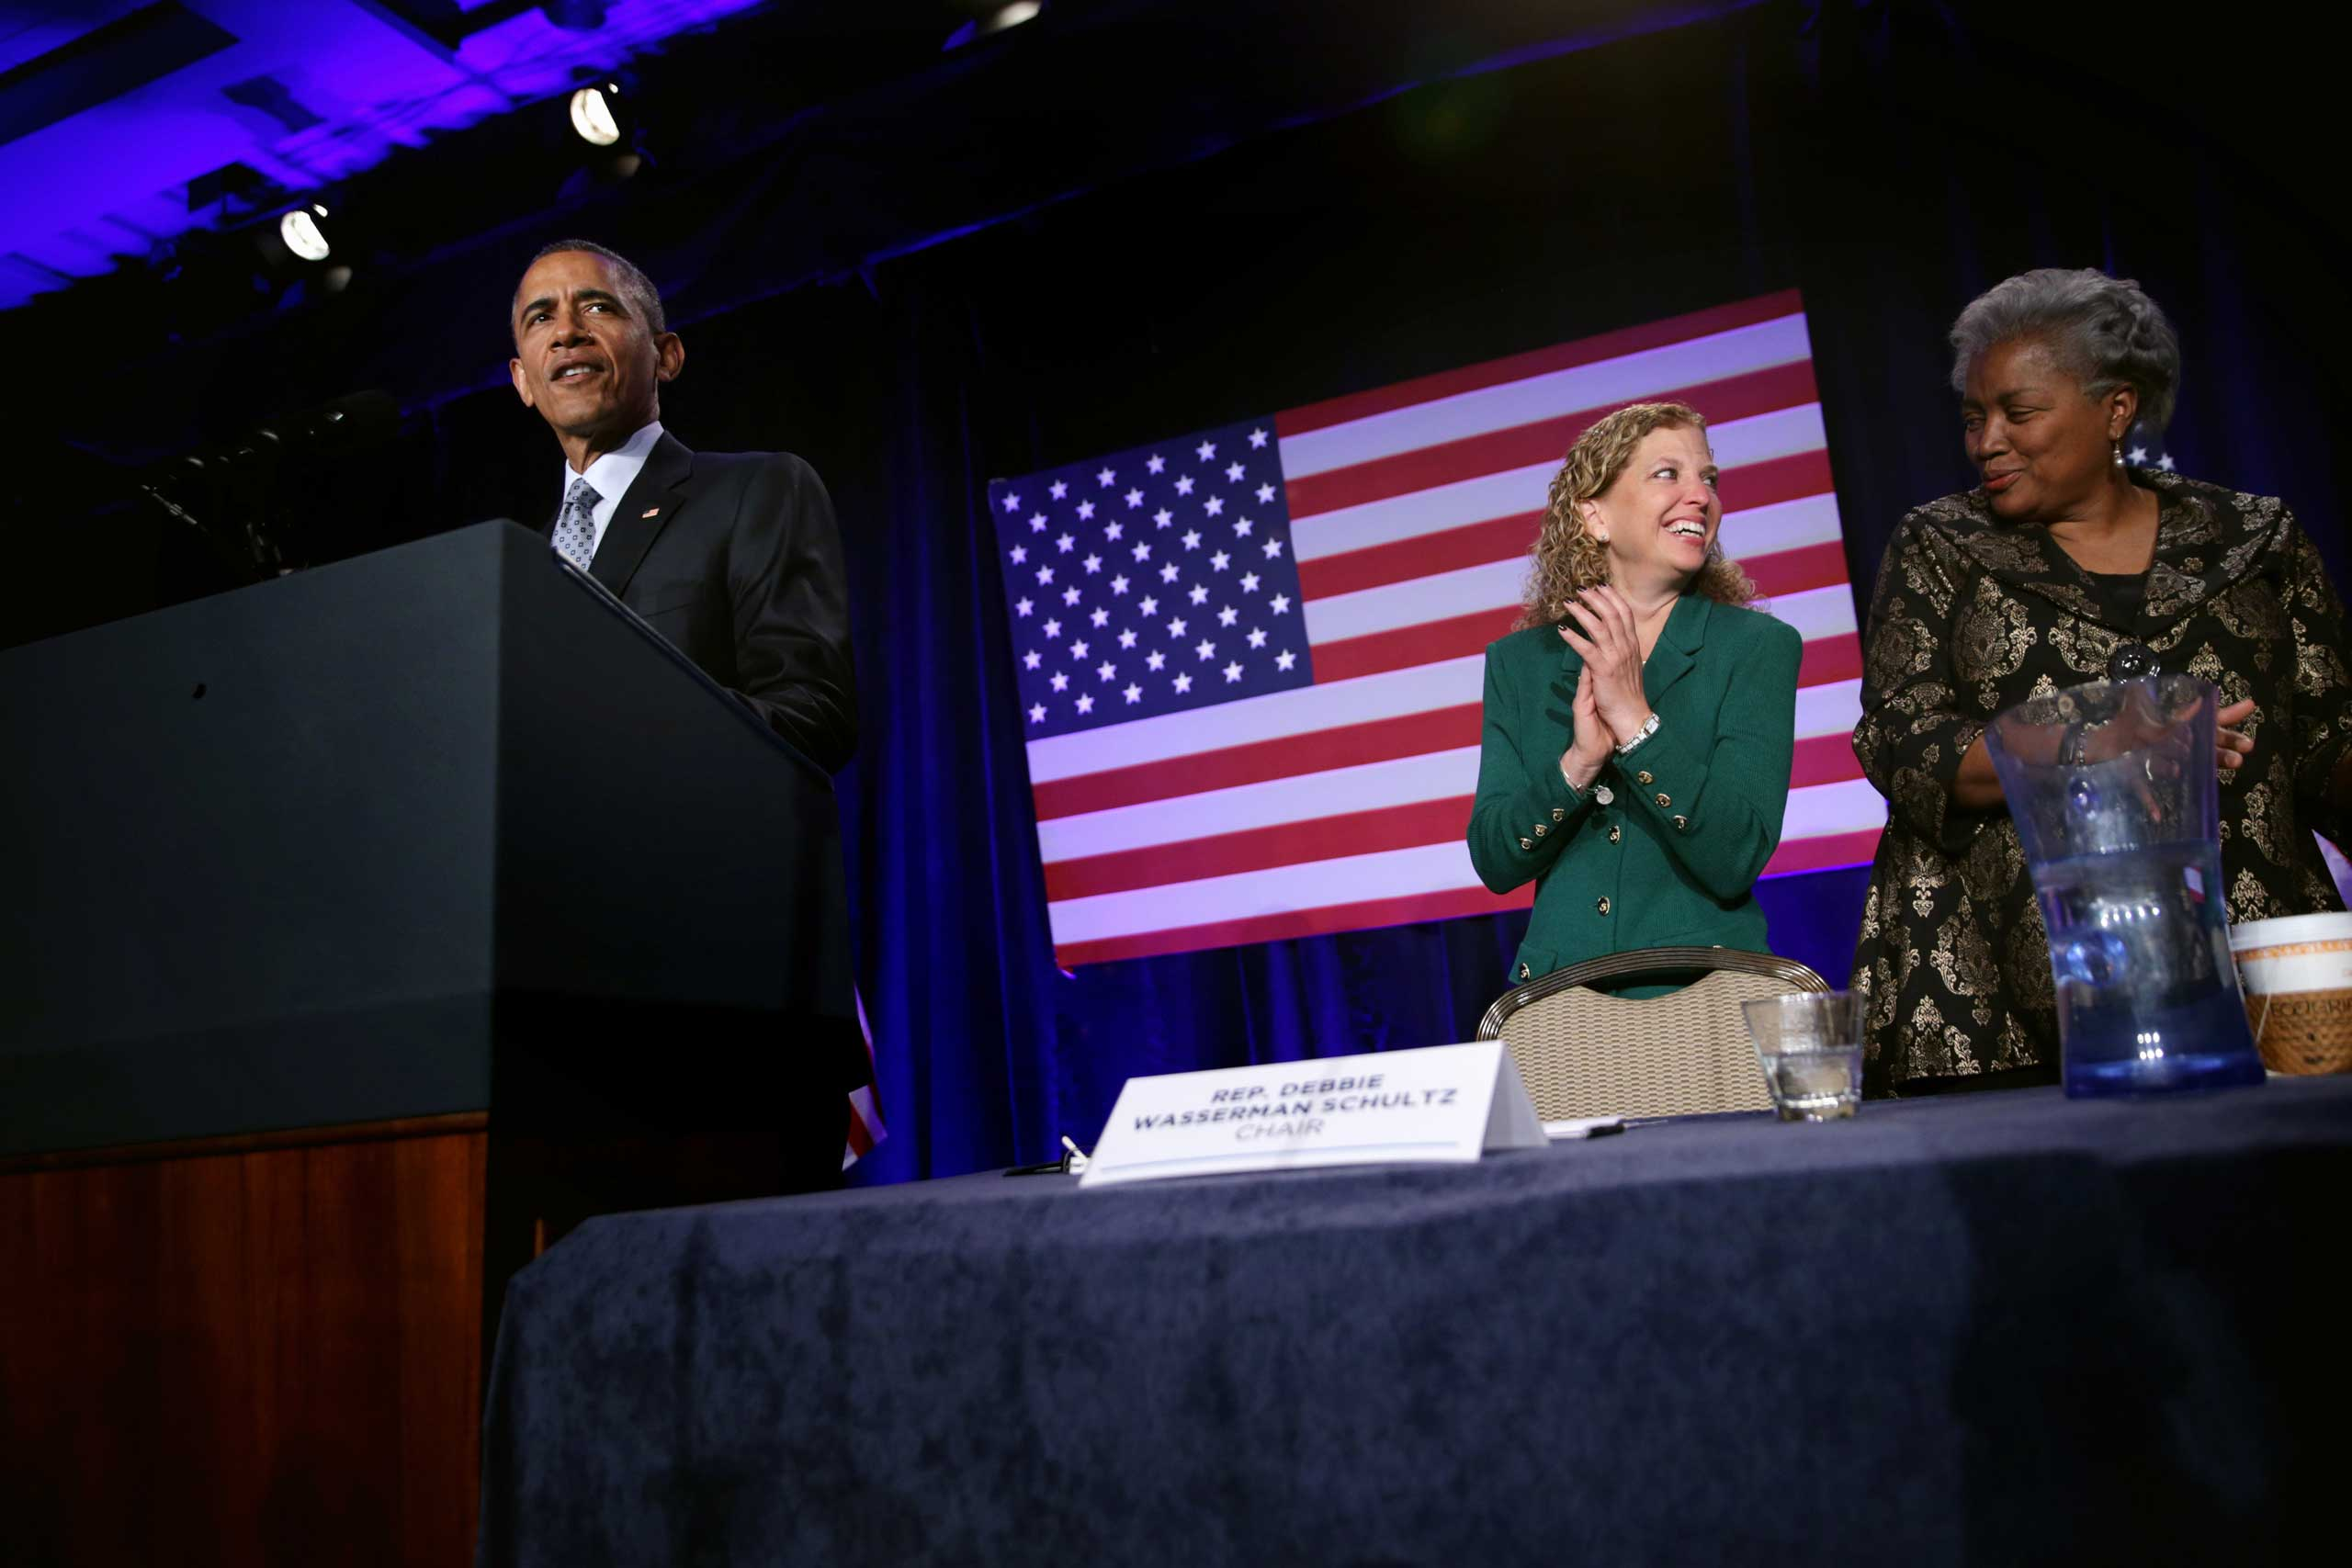 President Obama speaks as Democratic National Committee Chair and Rep. Debbie Wasserman Schultz and Vice Chair for Voter Registration and Participation Donna Brazile share a moment during the General Session of the 2015 DNC Winter Meeting, Feb. 20, 2015 in Washington, DC.